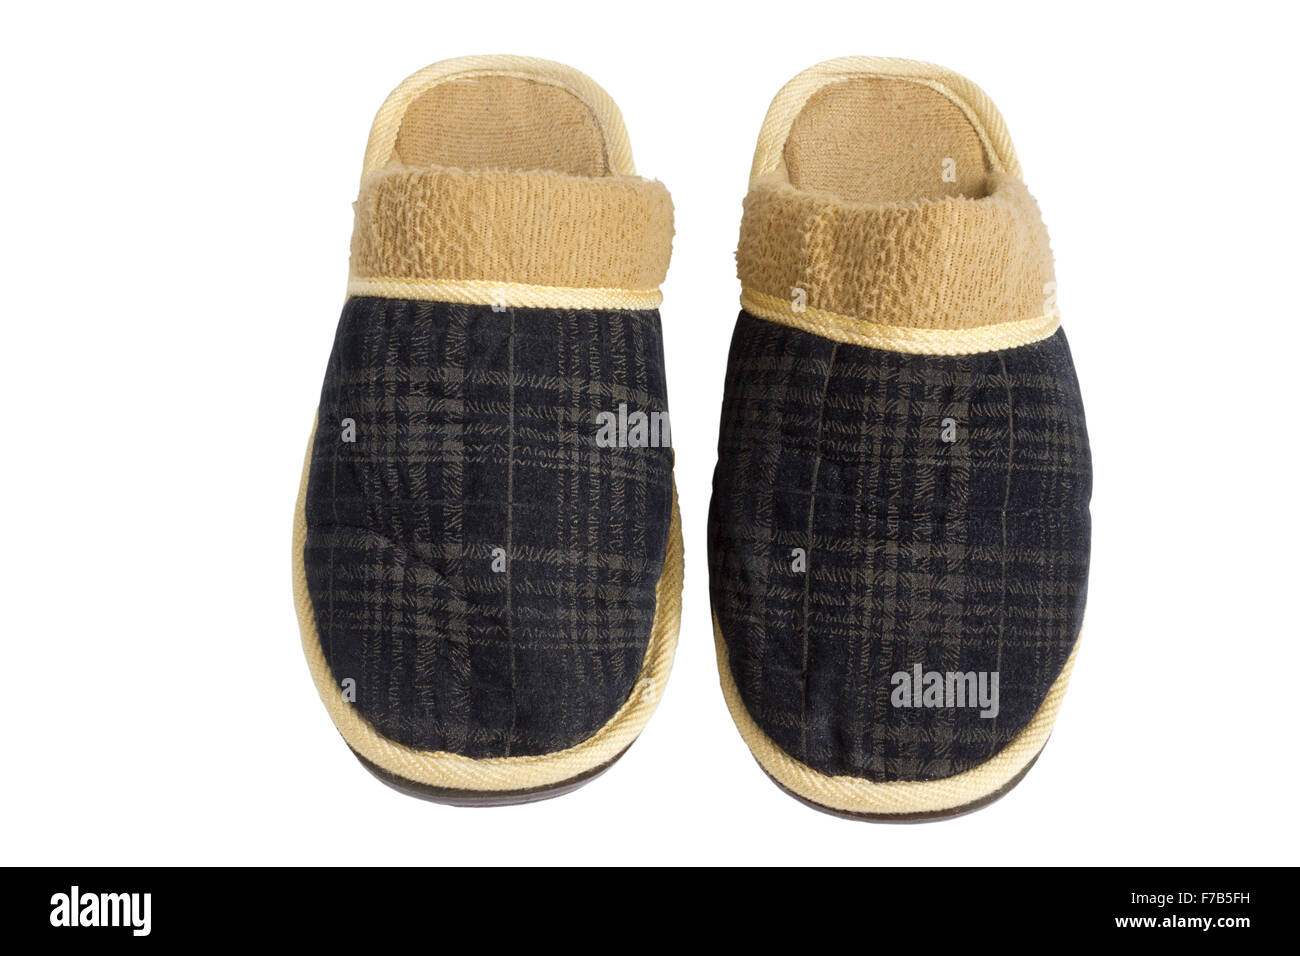 House slippers - Stock Image